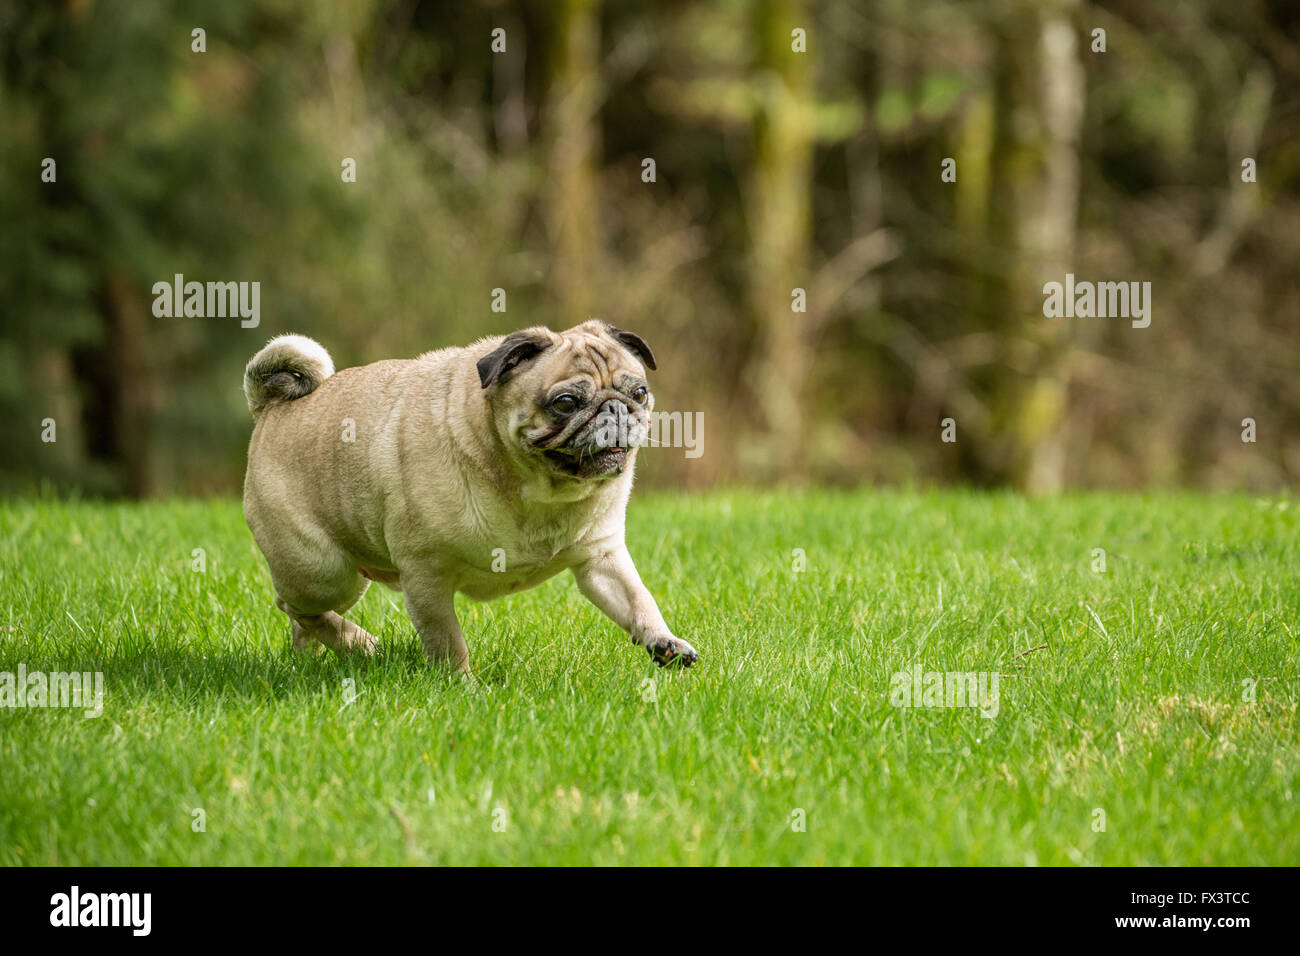 Cabo, an elderly fawn Pug, walking in his yard in Redmond, Washington, USA - Stock Image